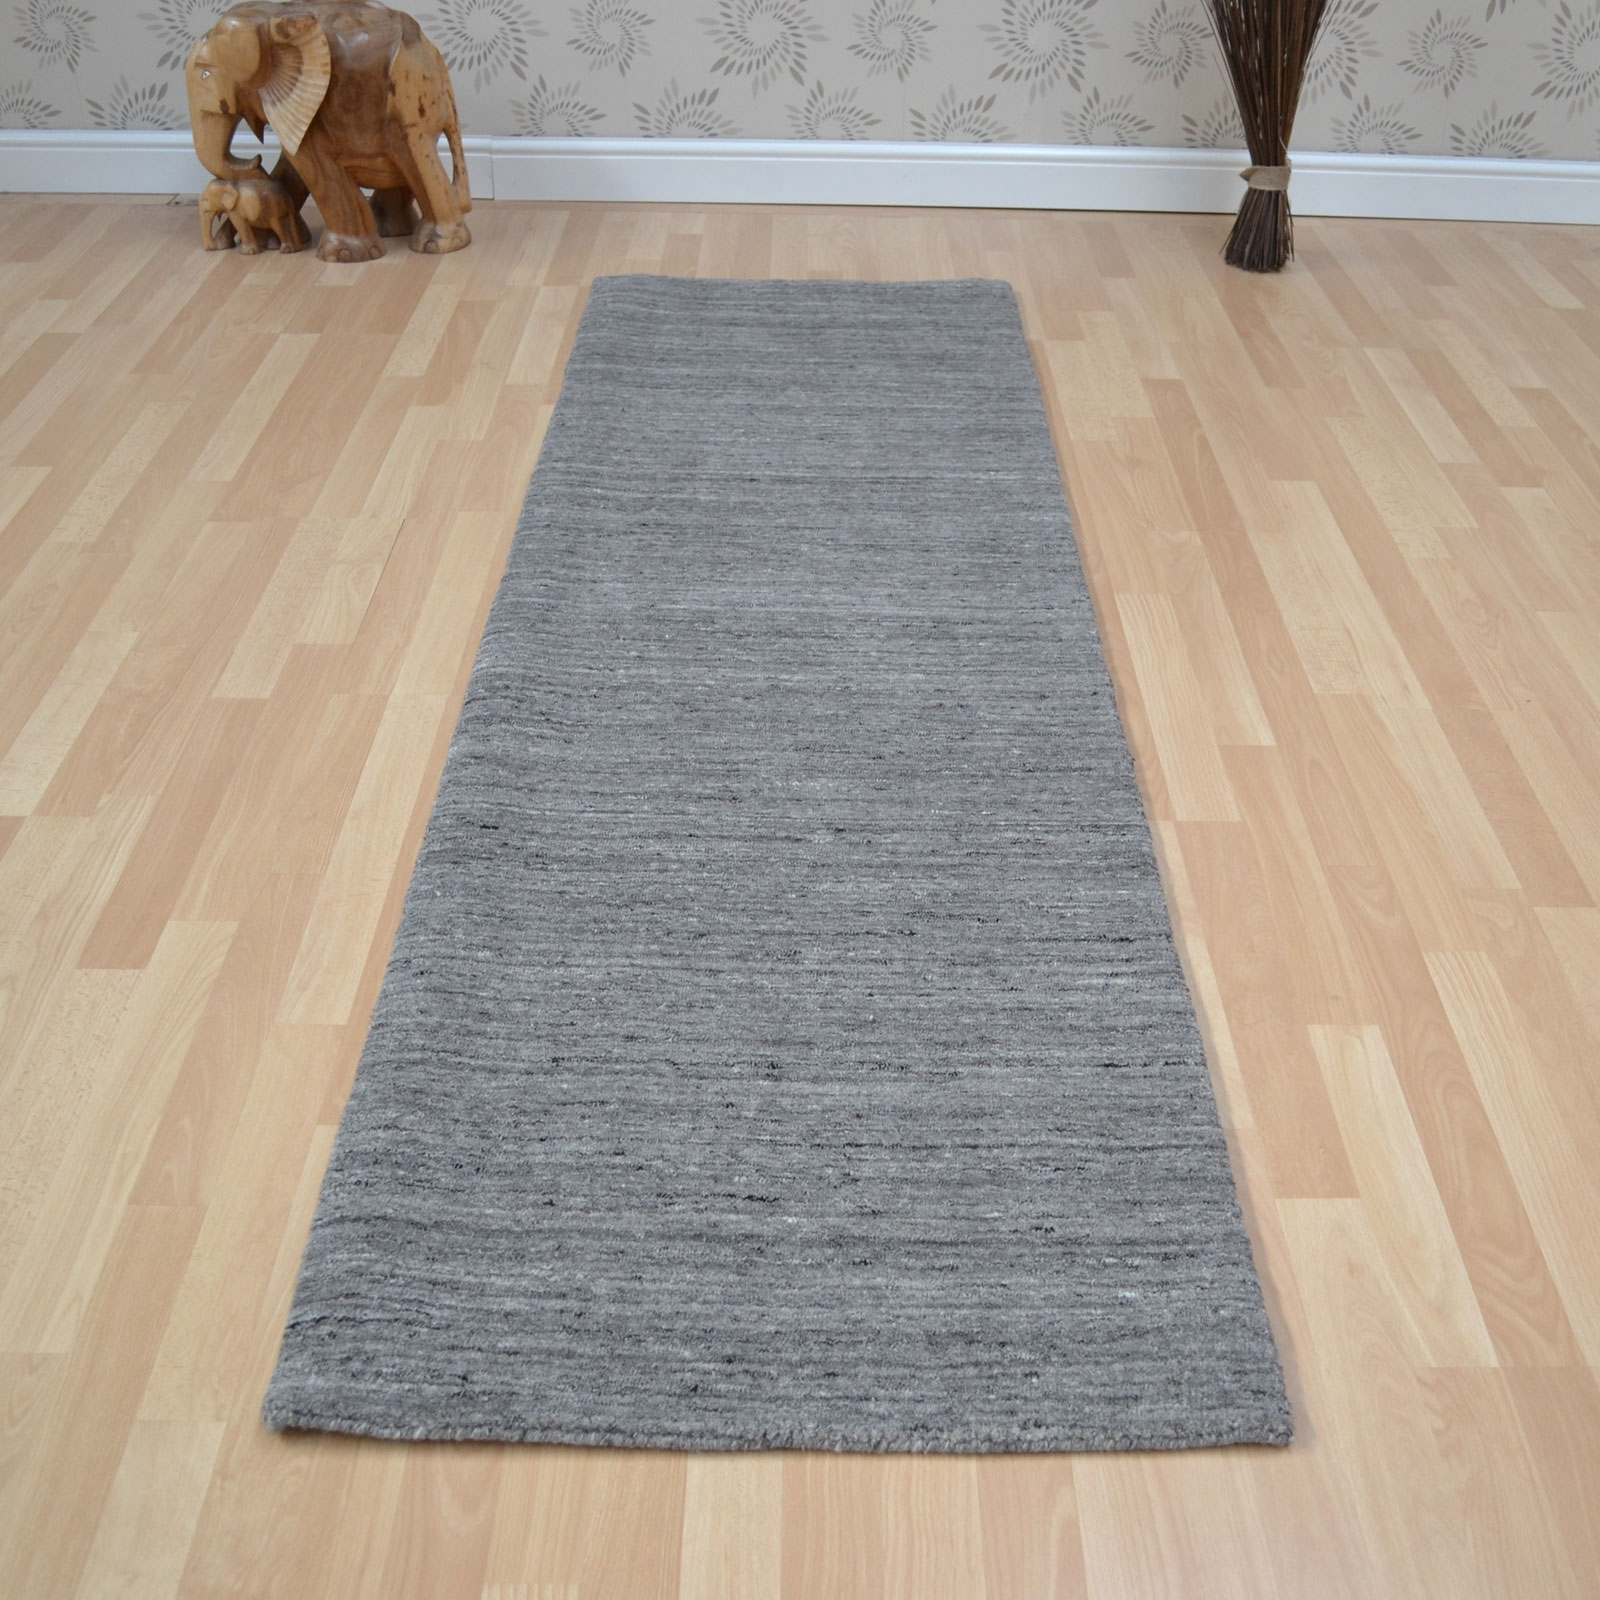 Hall Runner Rugs For Sale Roselawnlutheran Pertaining To Rubber Runners For Hallways (#10 of 20)